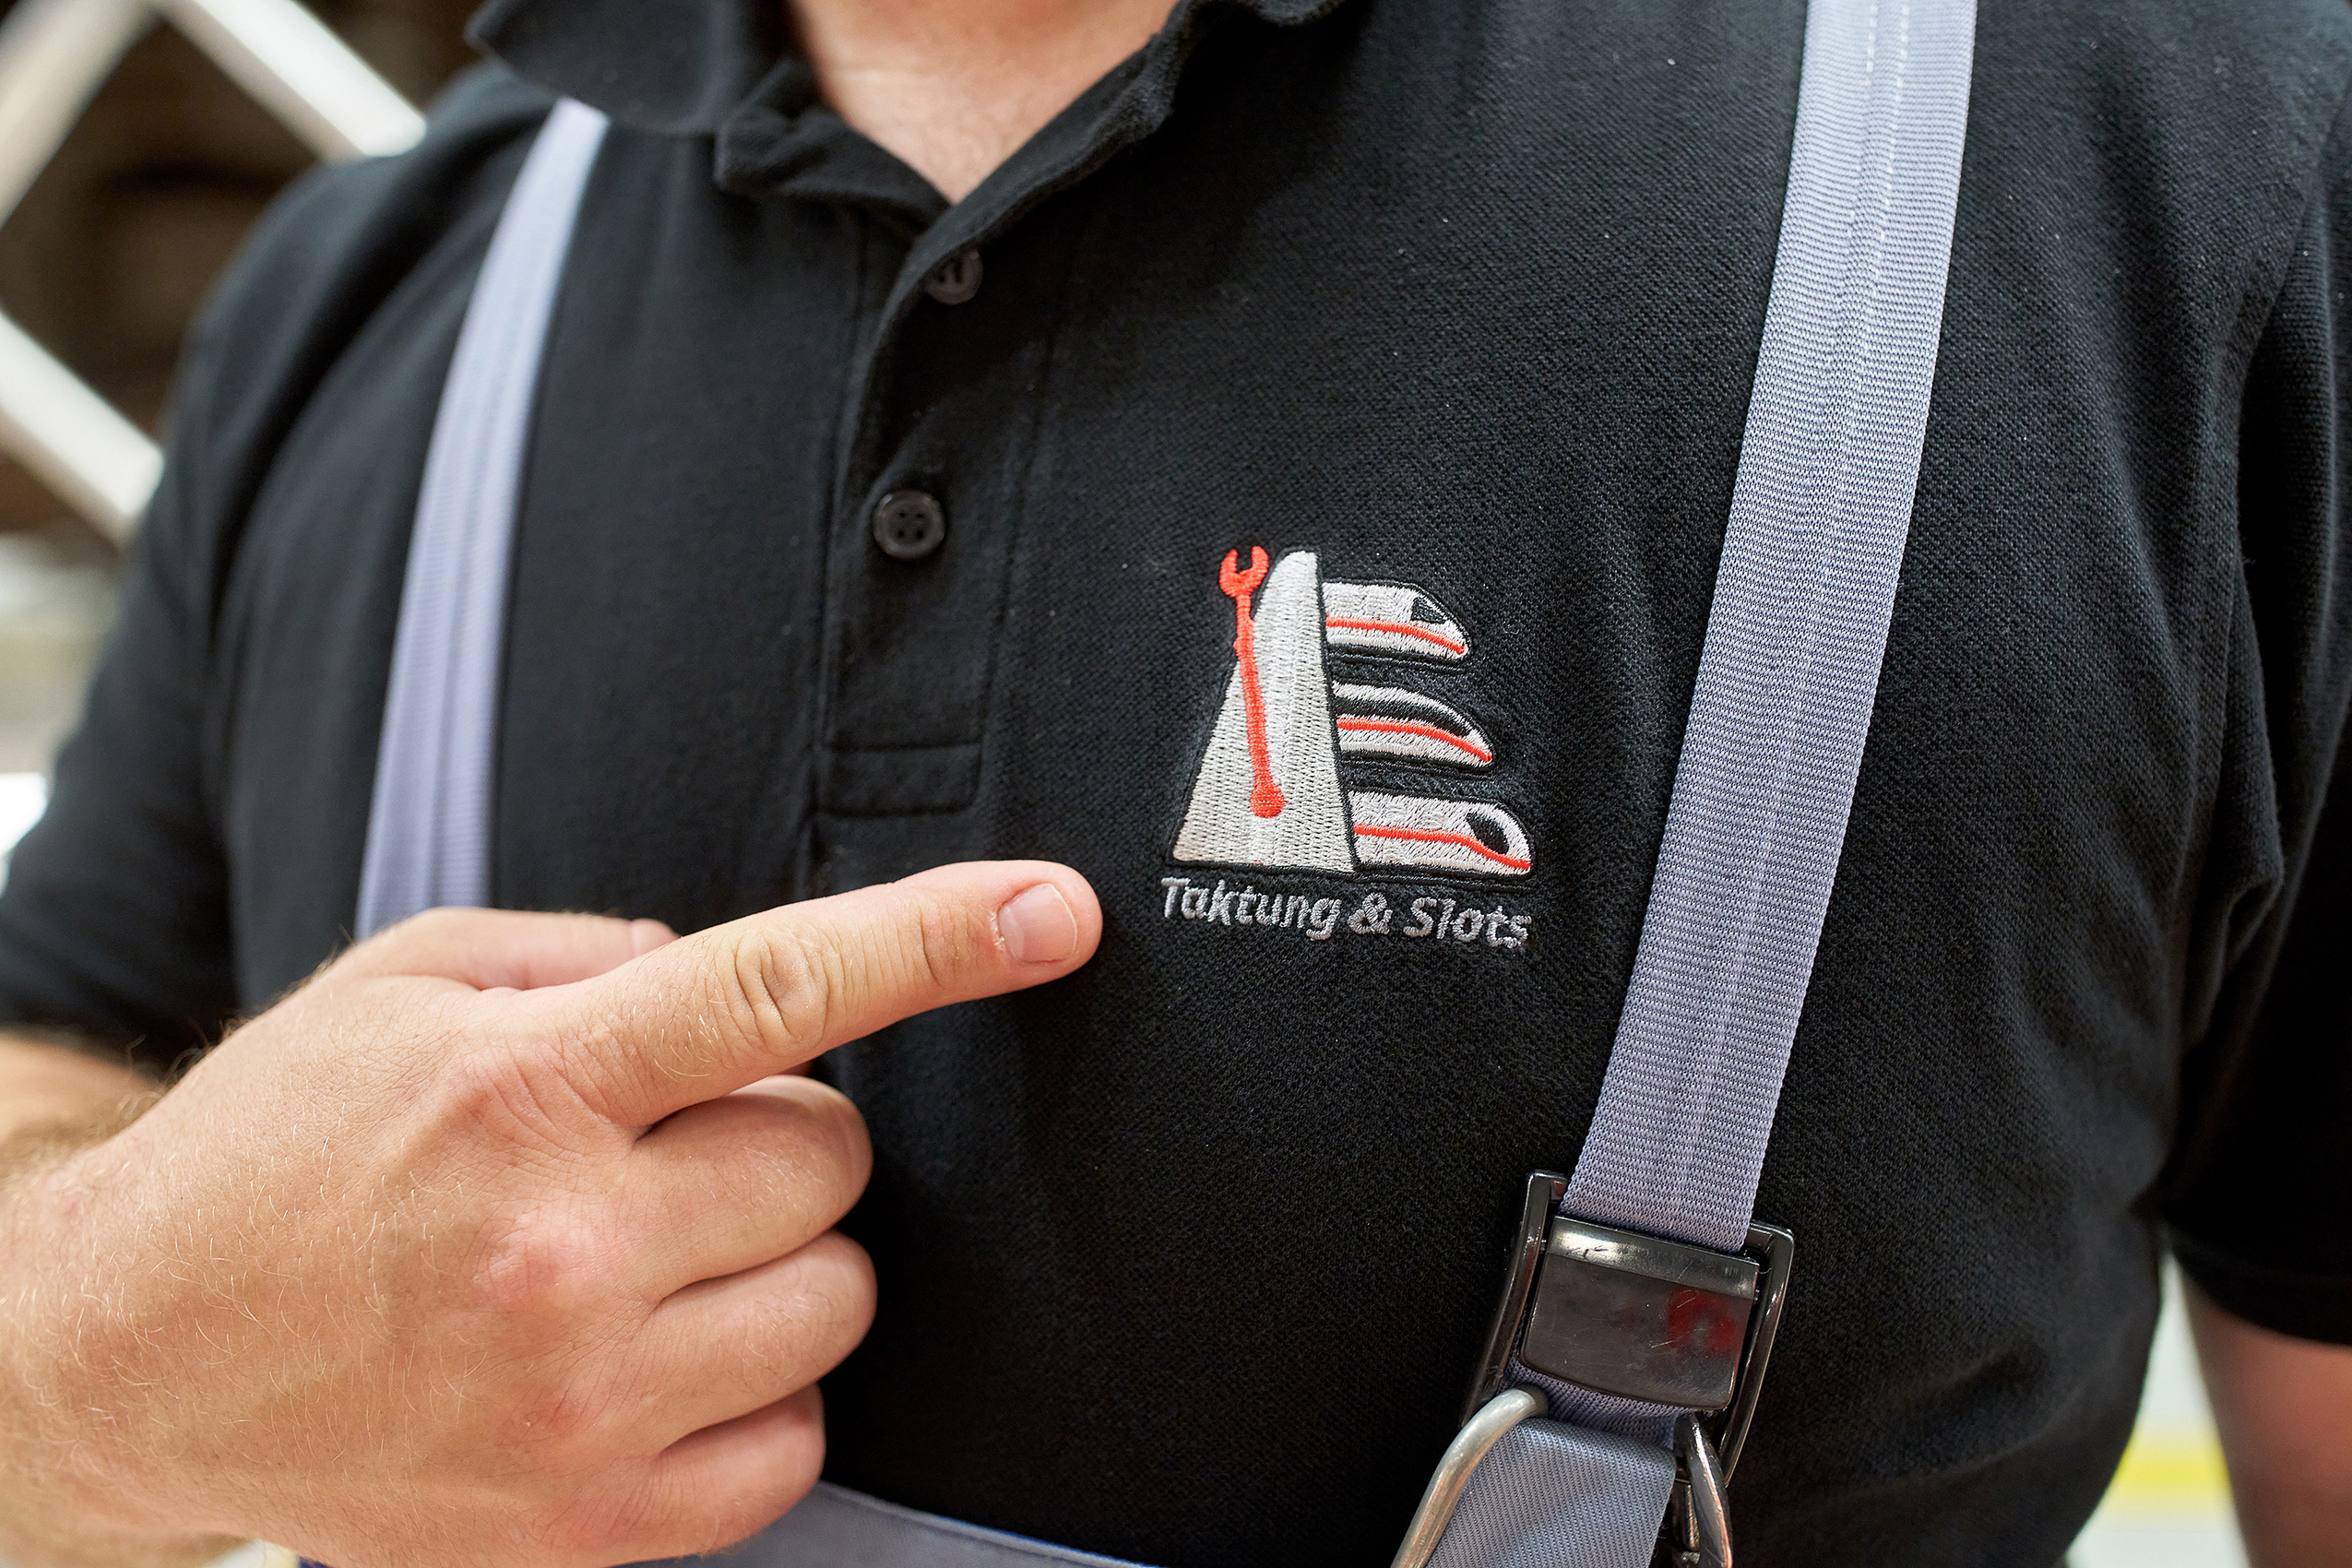 The principle is embroidered on the polo shirt: precise intervals and slots help the night shift keep more trains in good shape.